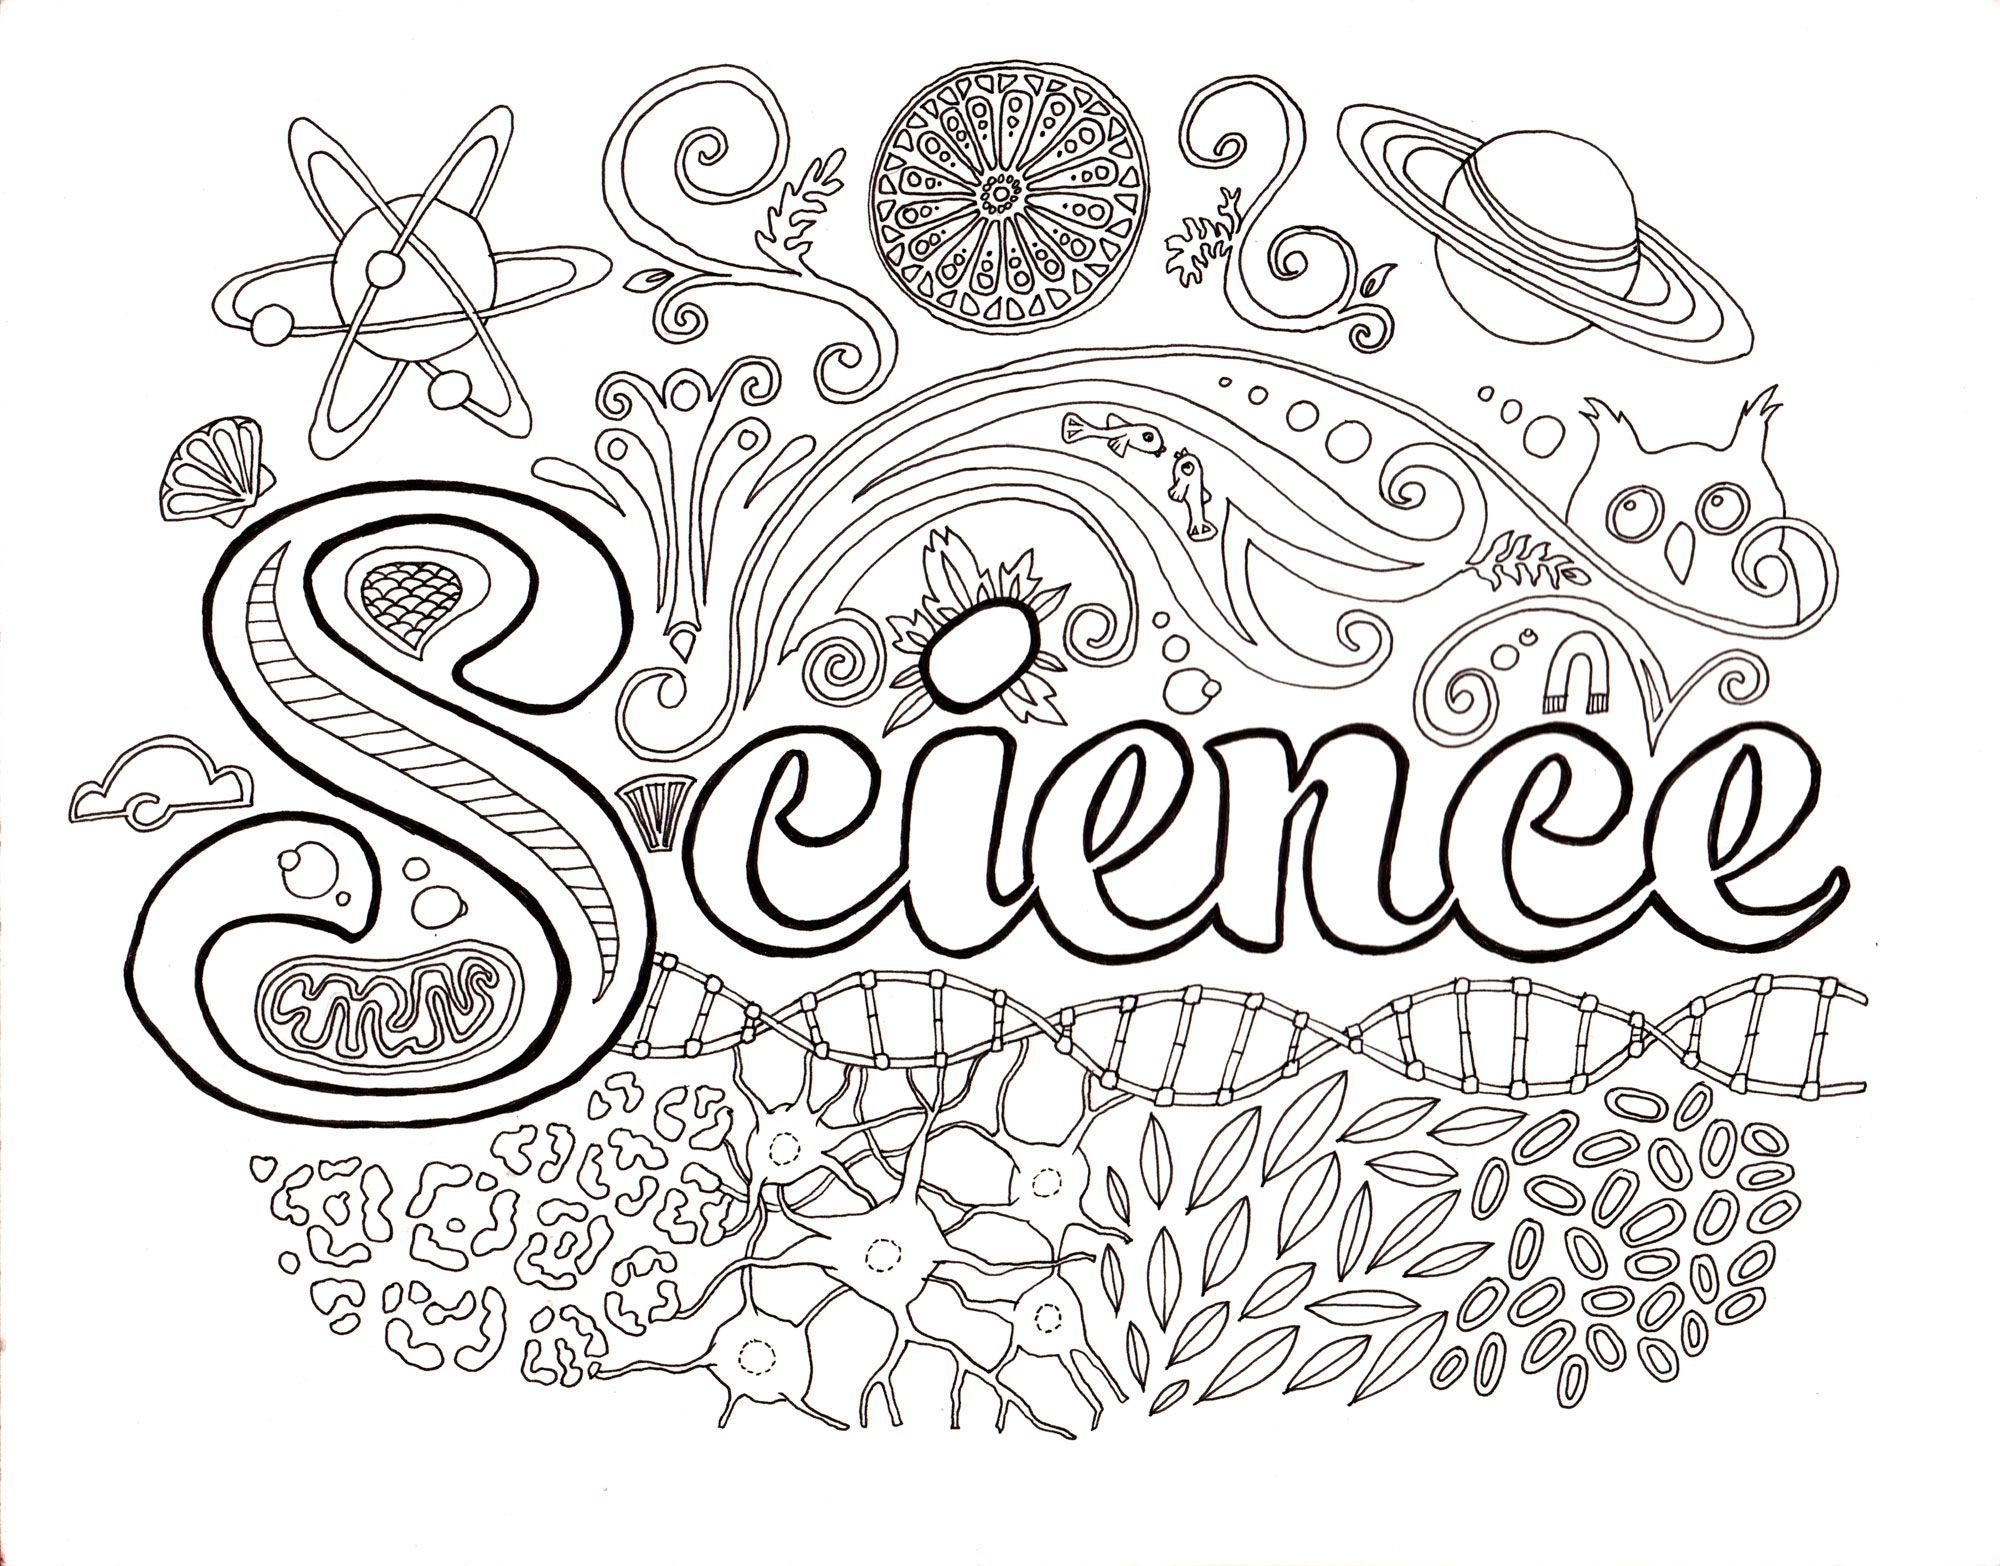 Science Coloring Pages #1